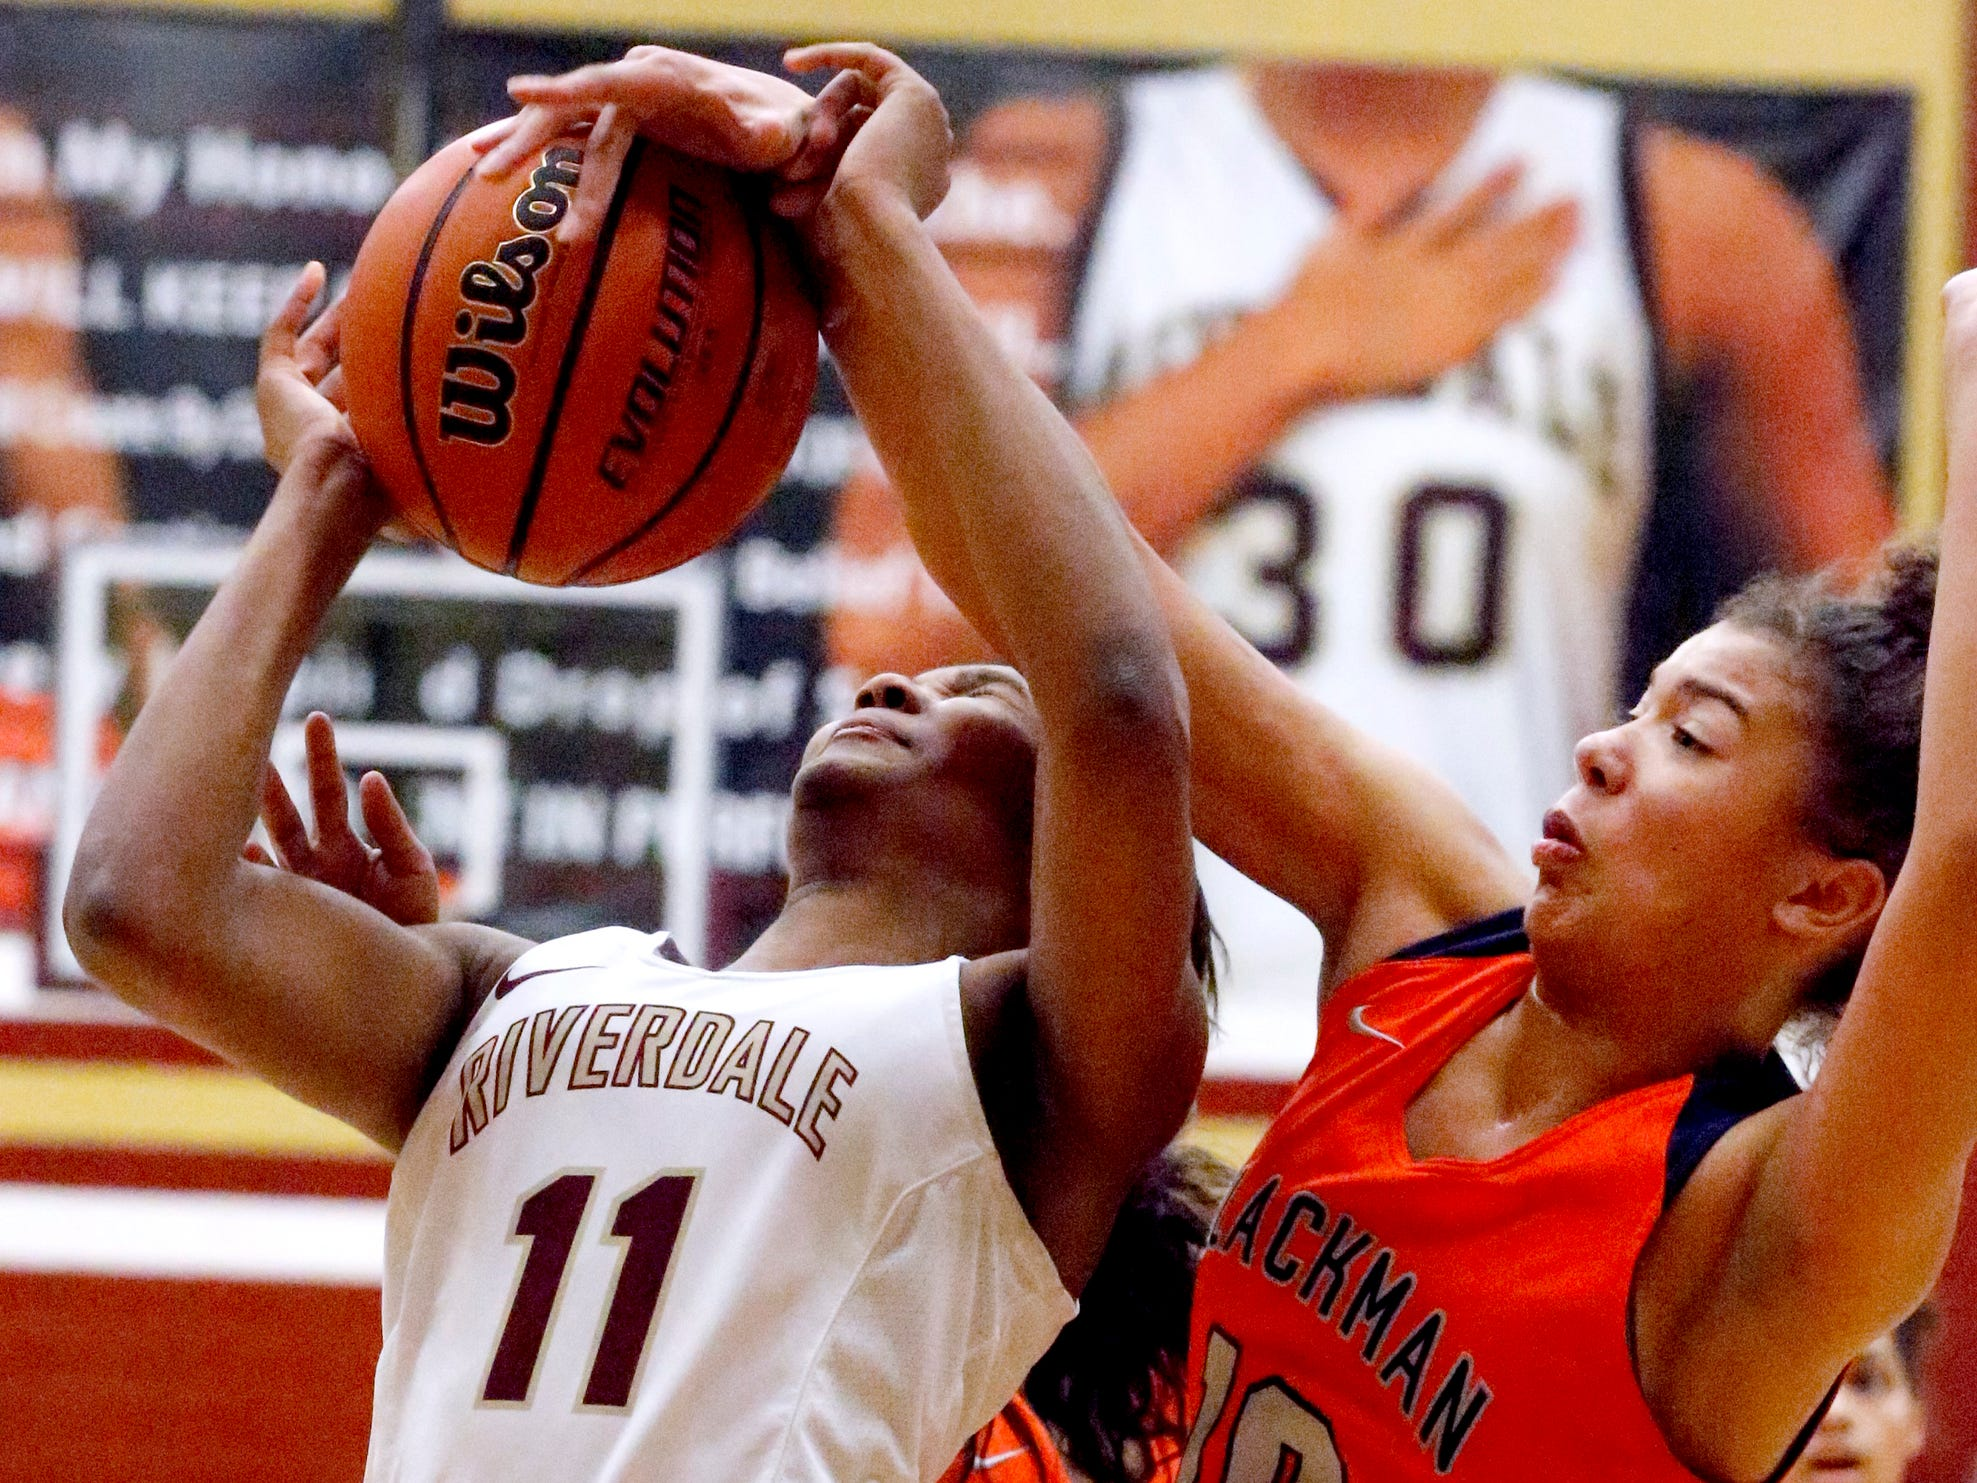 Riverdale's Aislynn Hayes (11) goes up for a shot as Blackman's Jaida Bond (10) guards her on Tuesday Jan. 8, 2019